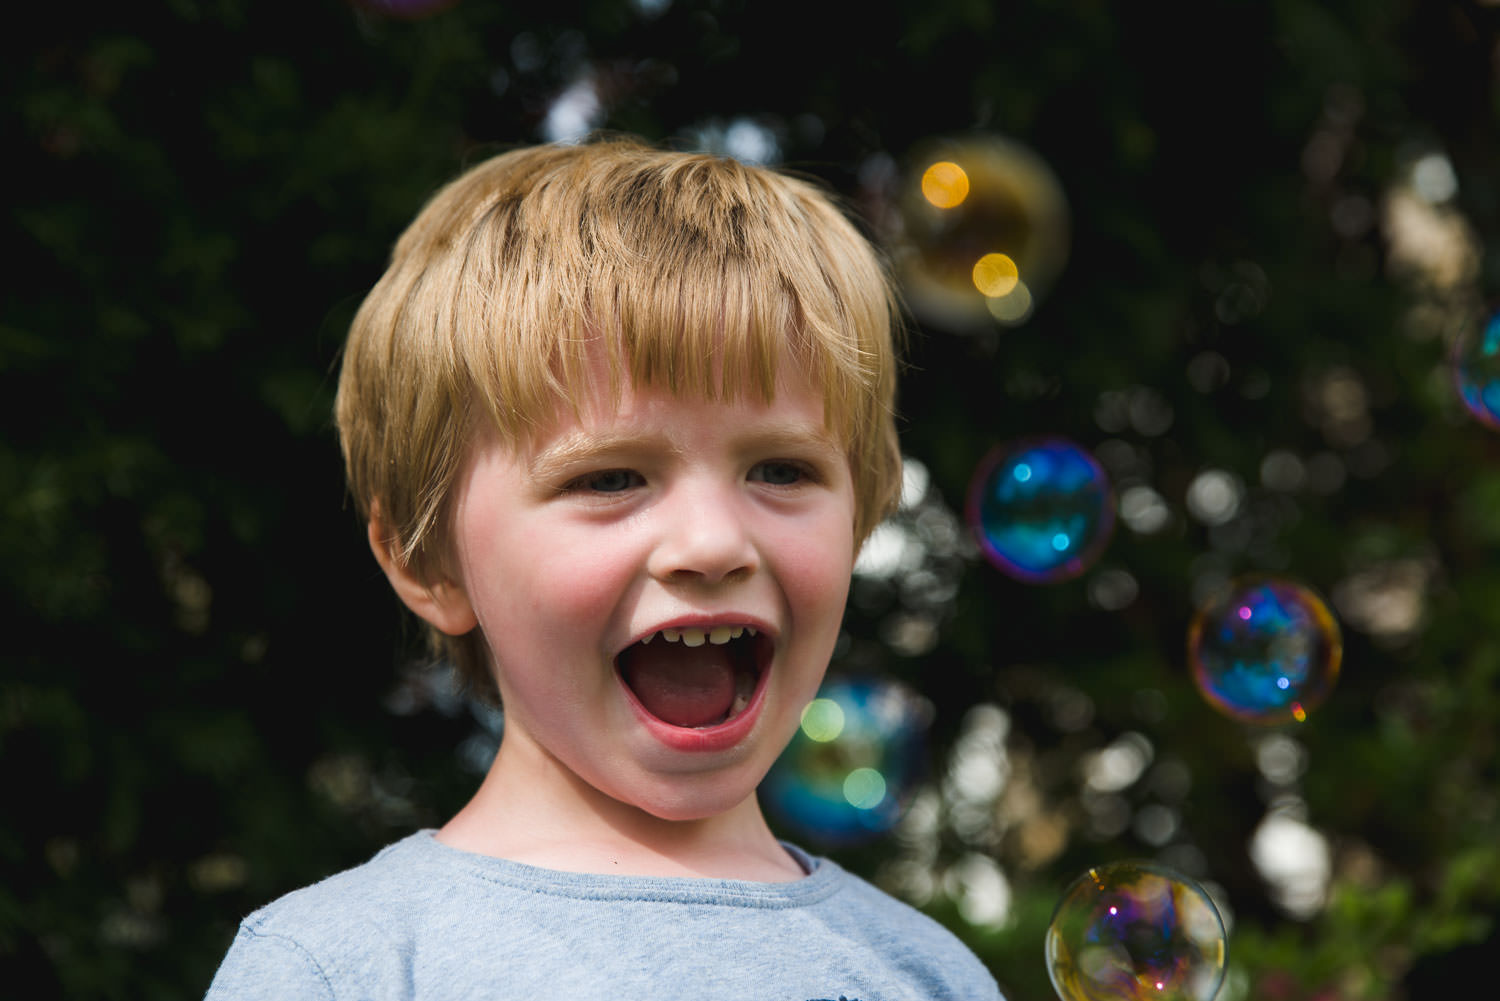 Portrait of a little boy with mouth open surrounded by bubbles.